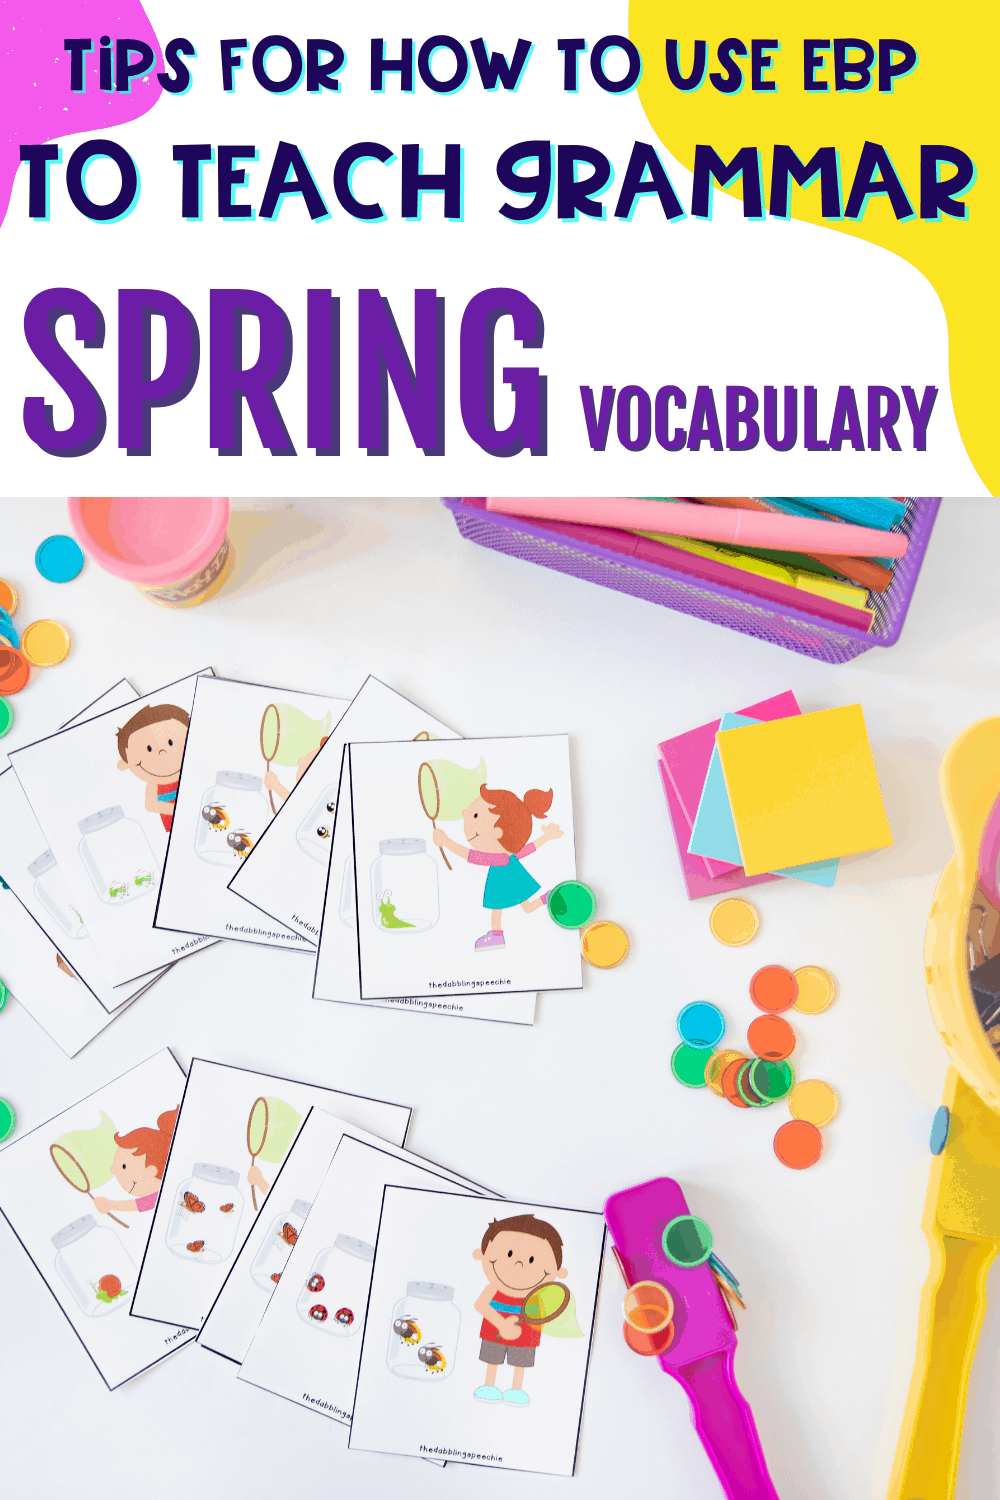 Tips for how to use spring vocabulary to target grammar skills in speech therapy